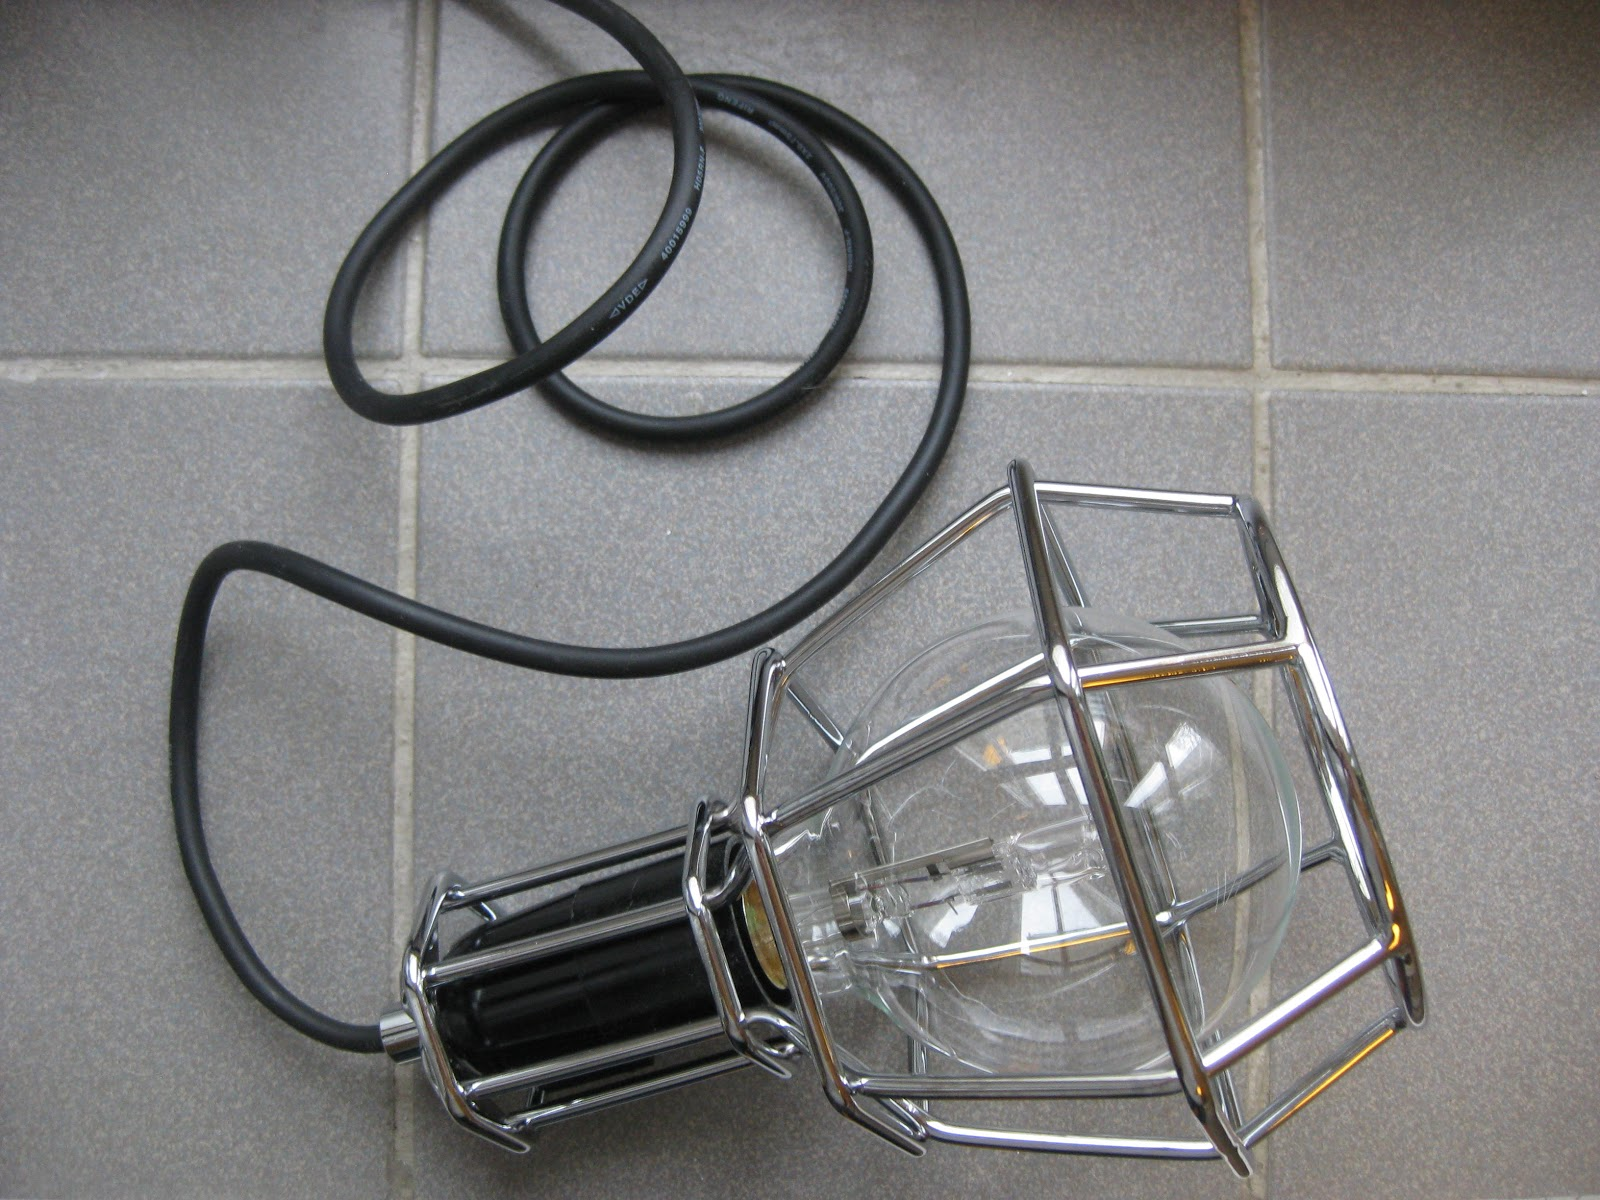 I Like The Industrial Look Of It And Even Though Iu0027m Not Living In A Loft I  Think It Looks Great In My Apartment Too. The Work Lamp Goes Well As A ...